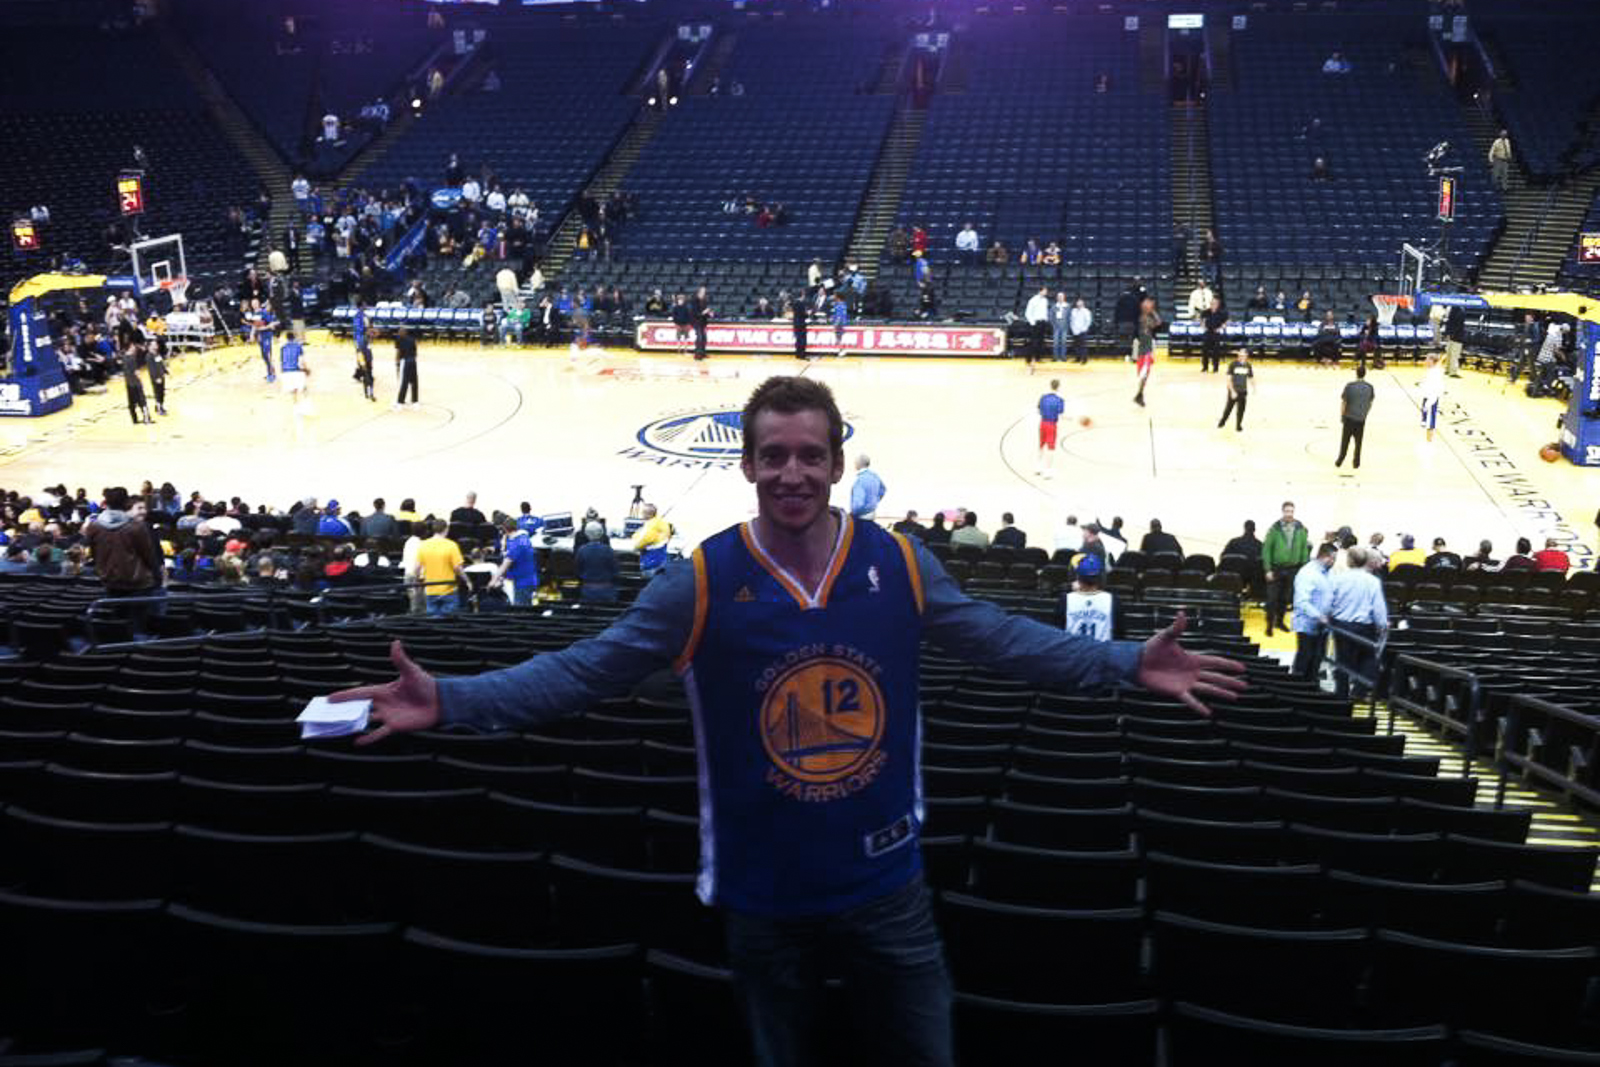 Golden State Warriors game